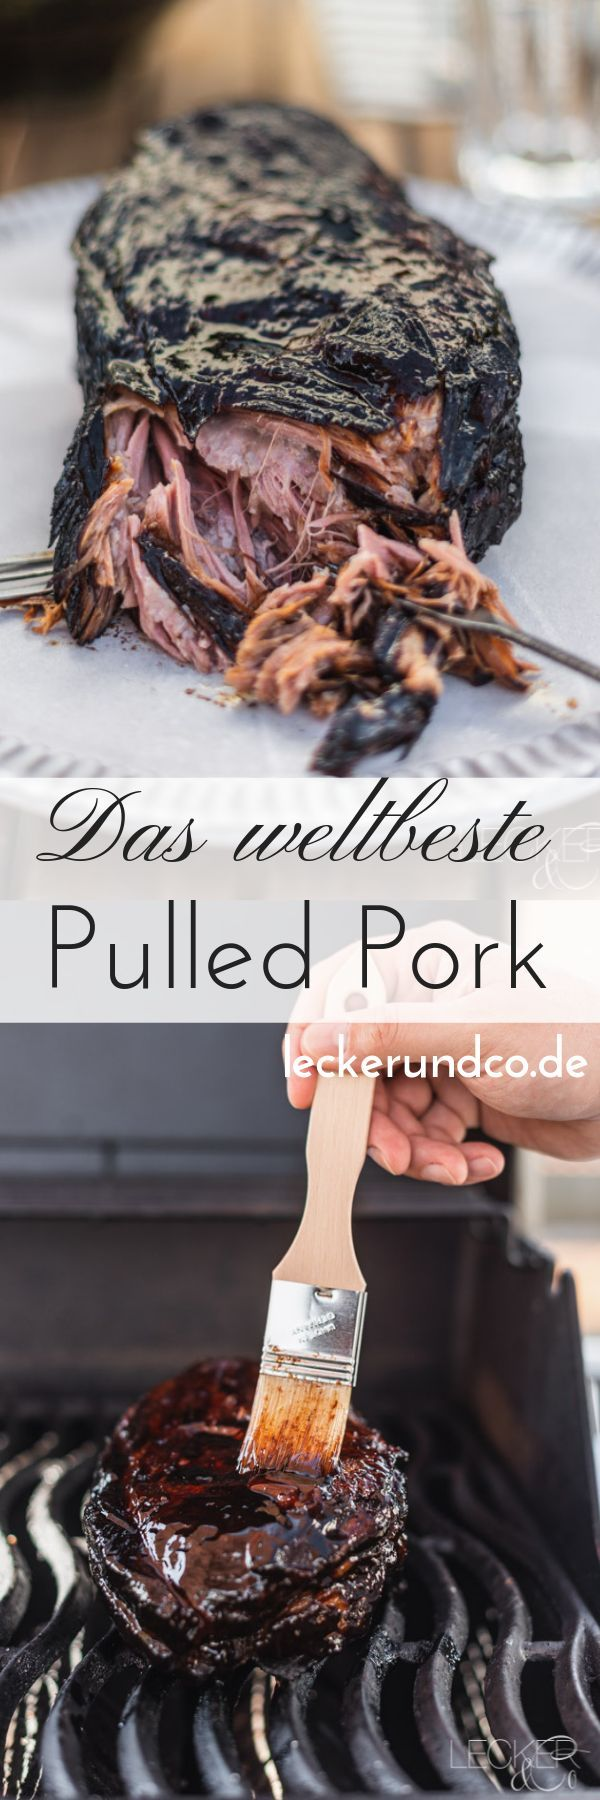 Photo of The best pulled pork | LECKER & Co | Food blog from Nuremberg